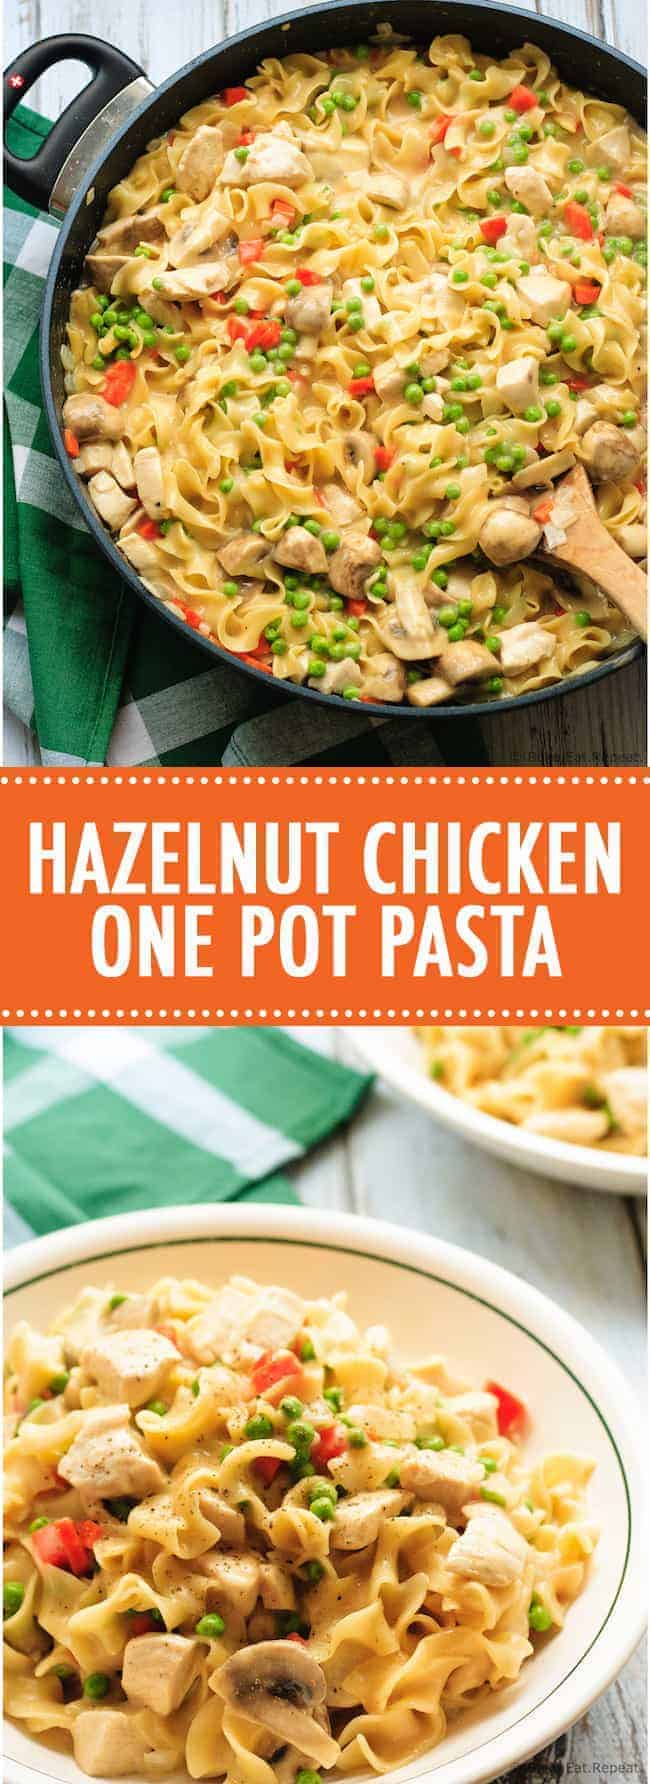 This hazelnut chicken one pot pasta is the perfect 30 minute weeknight meal!